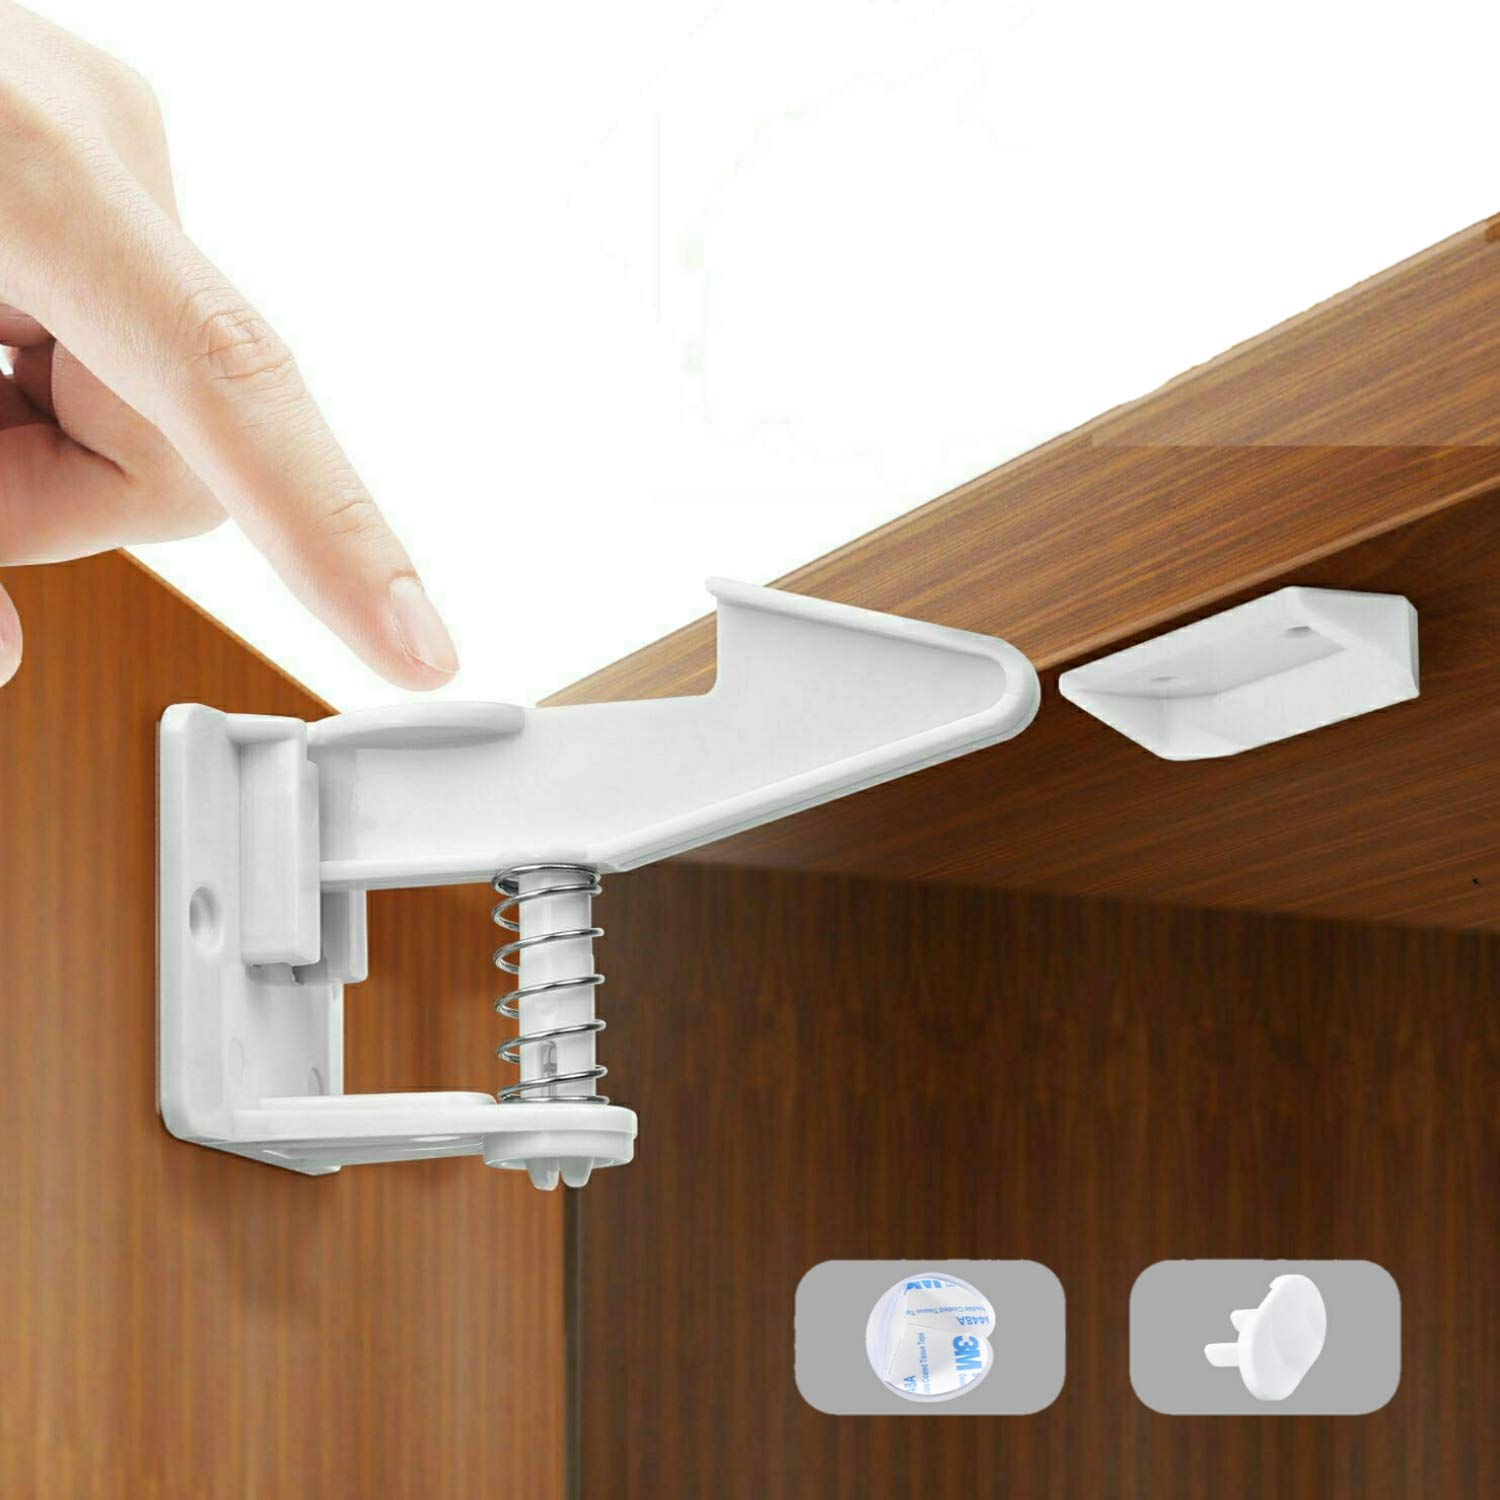 Mybabyly online shopping Baby Proofing Cabinet Locks Drill pcs – No 12 Quantity limited